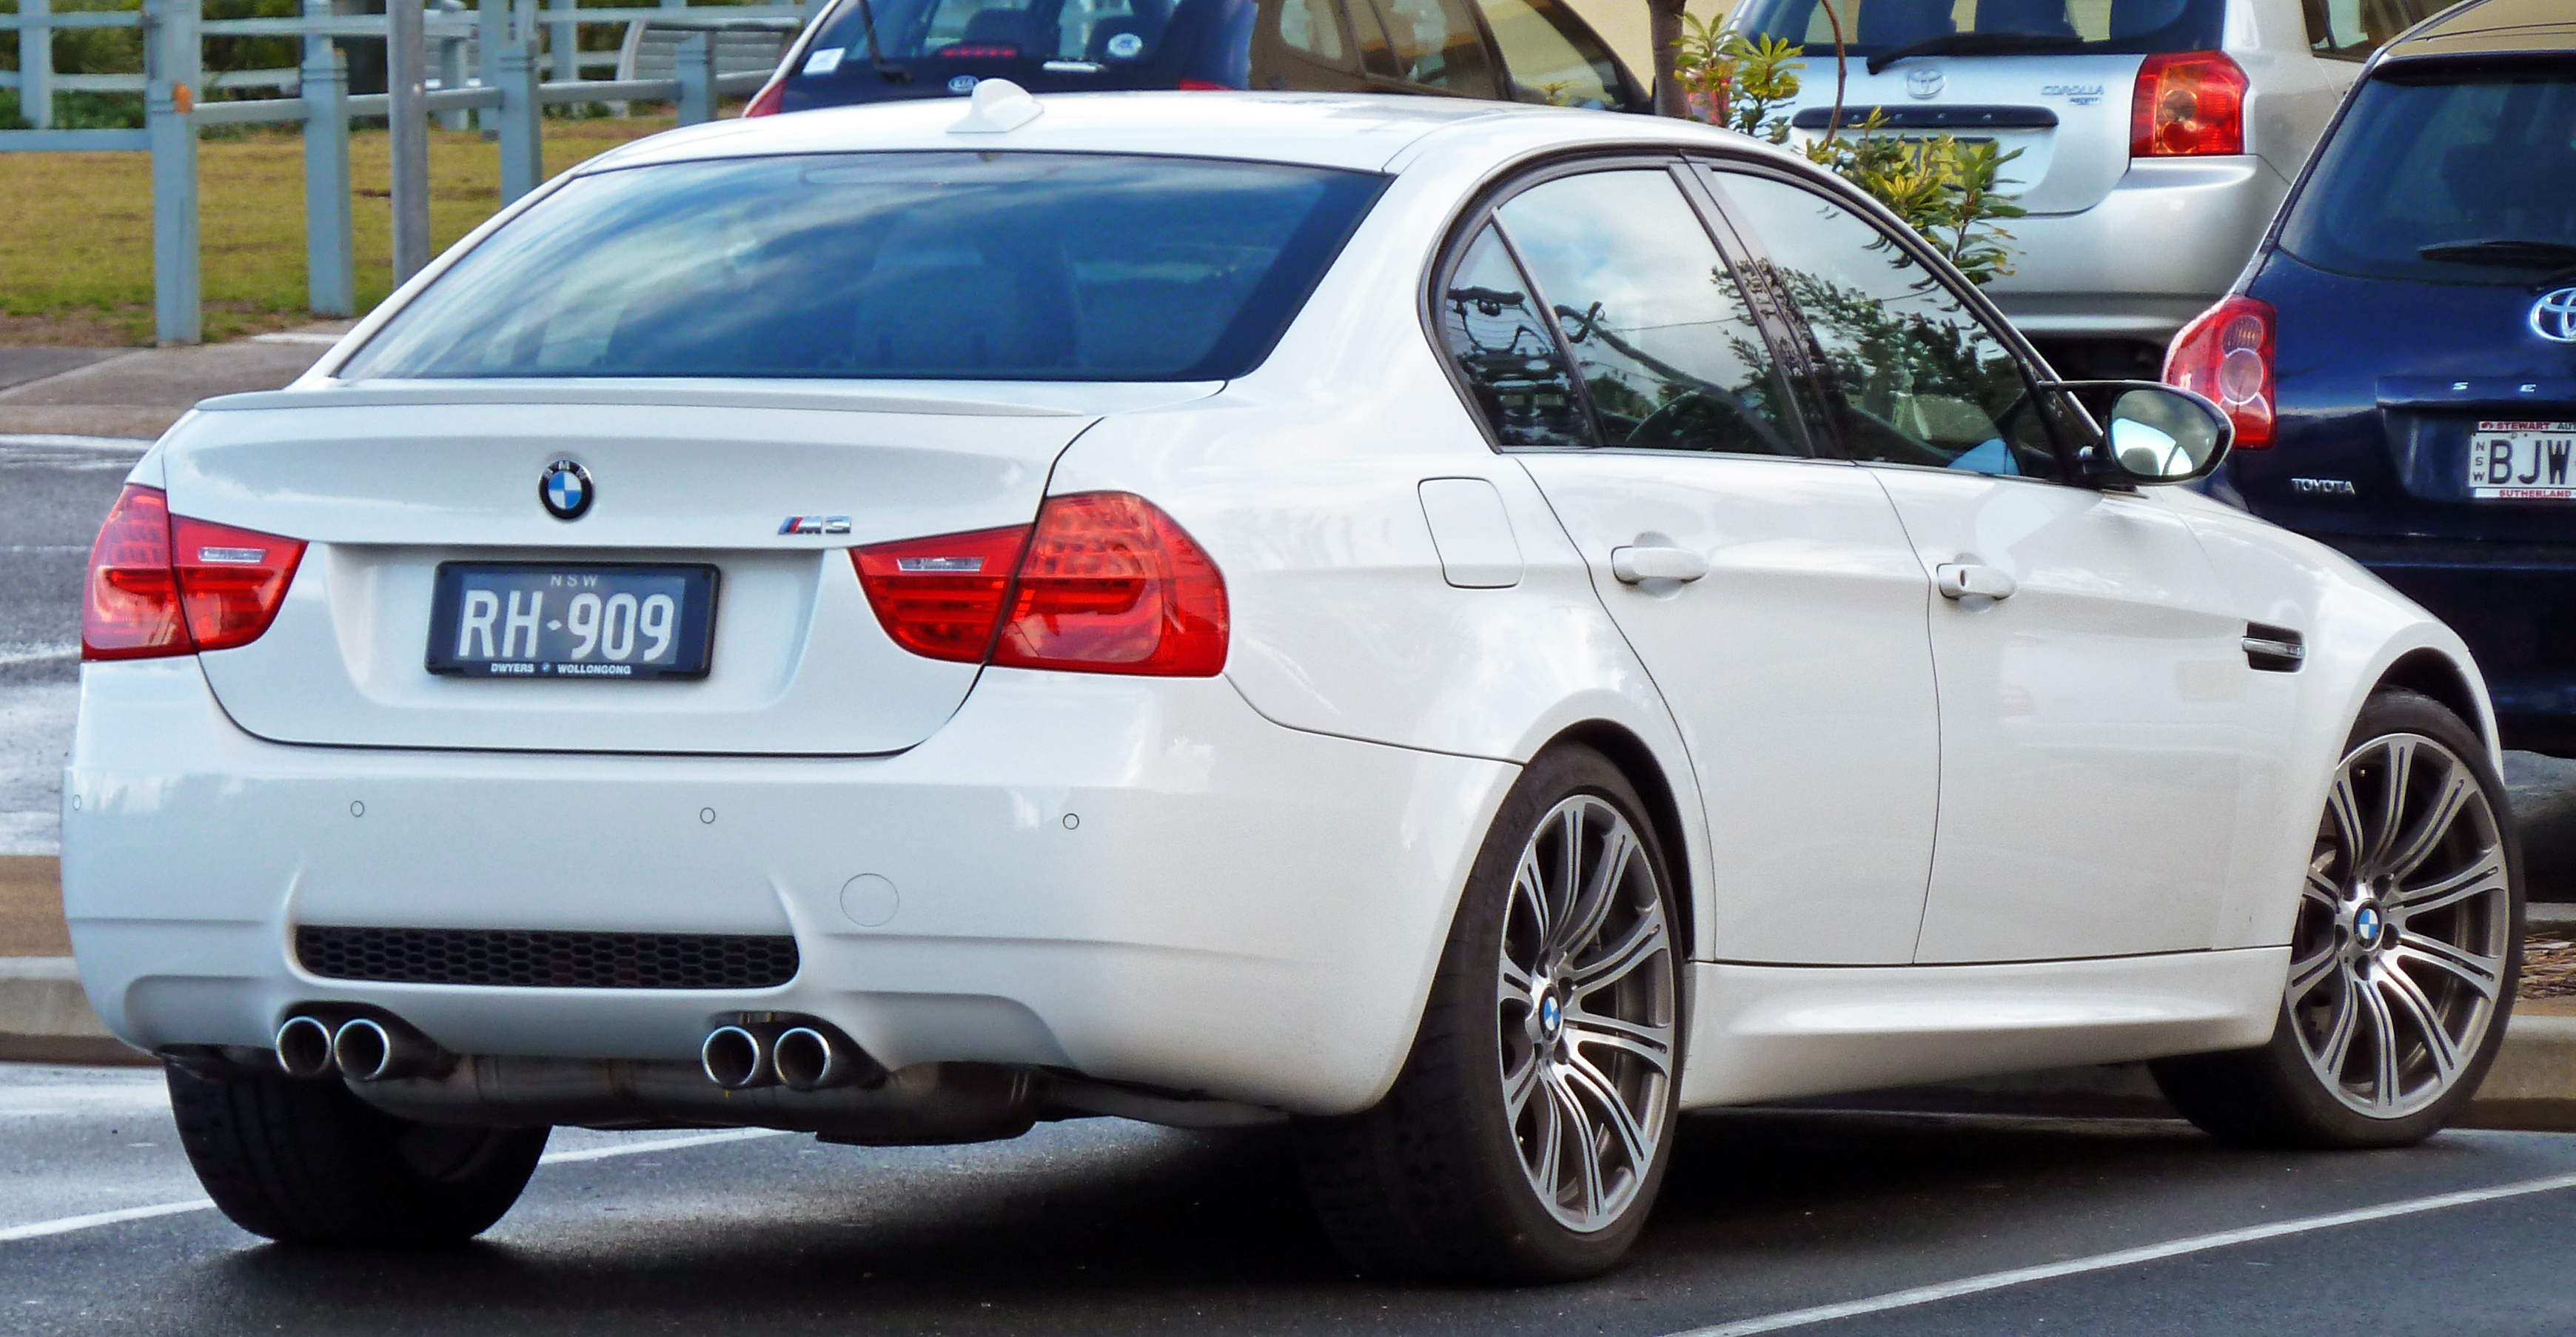 File:2008-2010 BMW M3 (E90) sedan 03.jpg - Wikimedia Commons